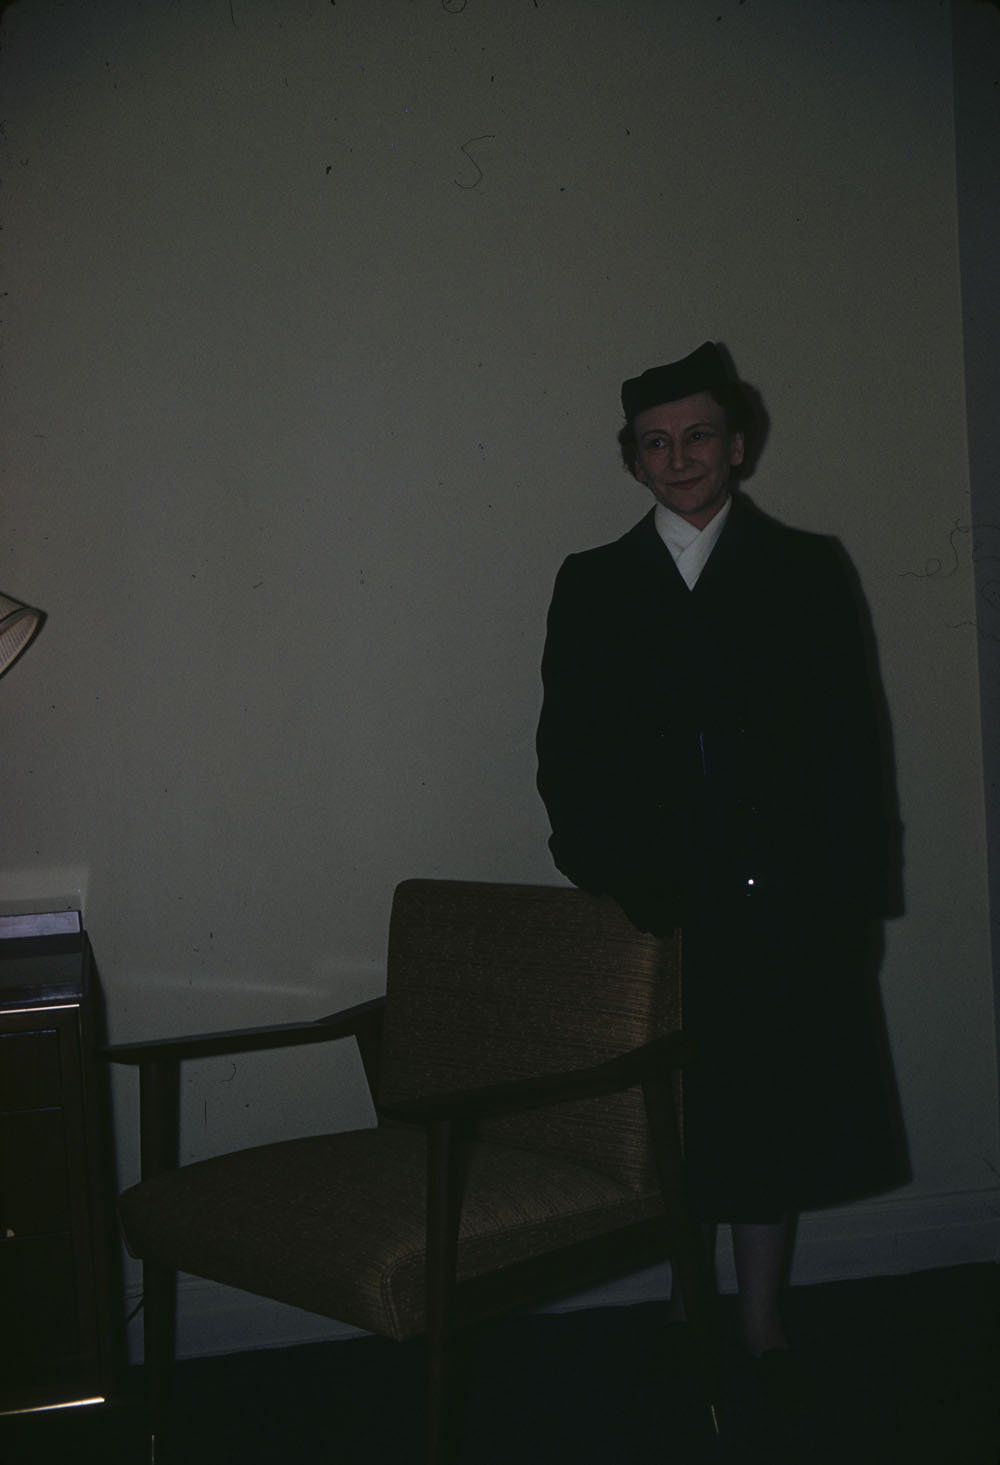 A.K. Smith in new uniform standing beside desk chair. (item 1)